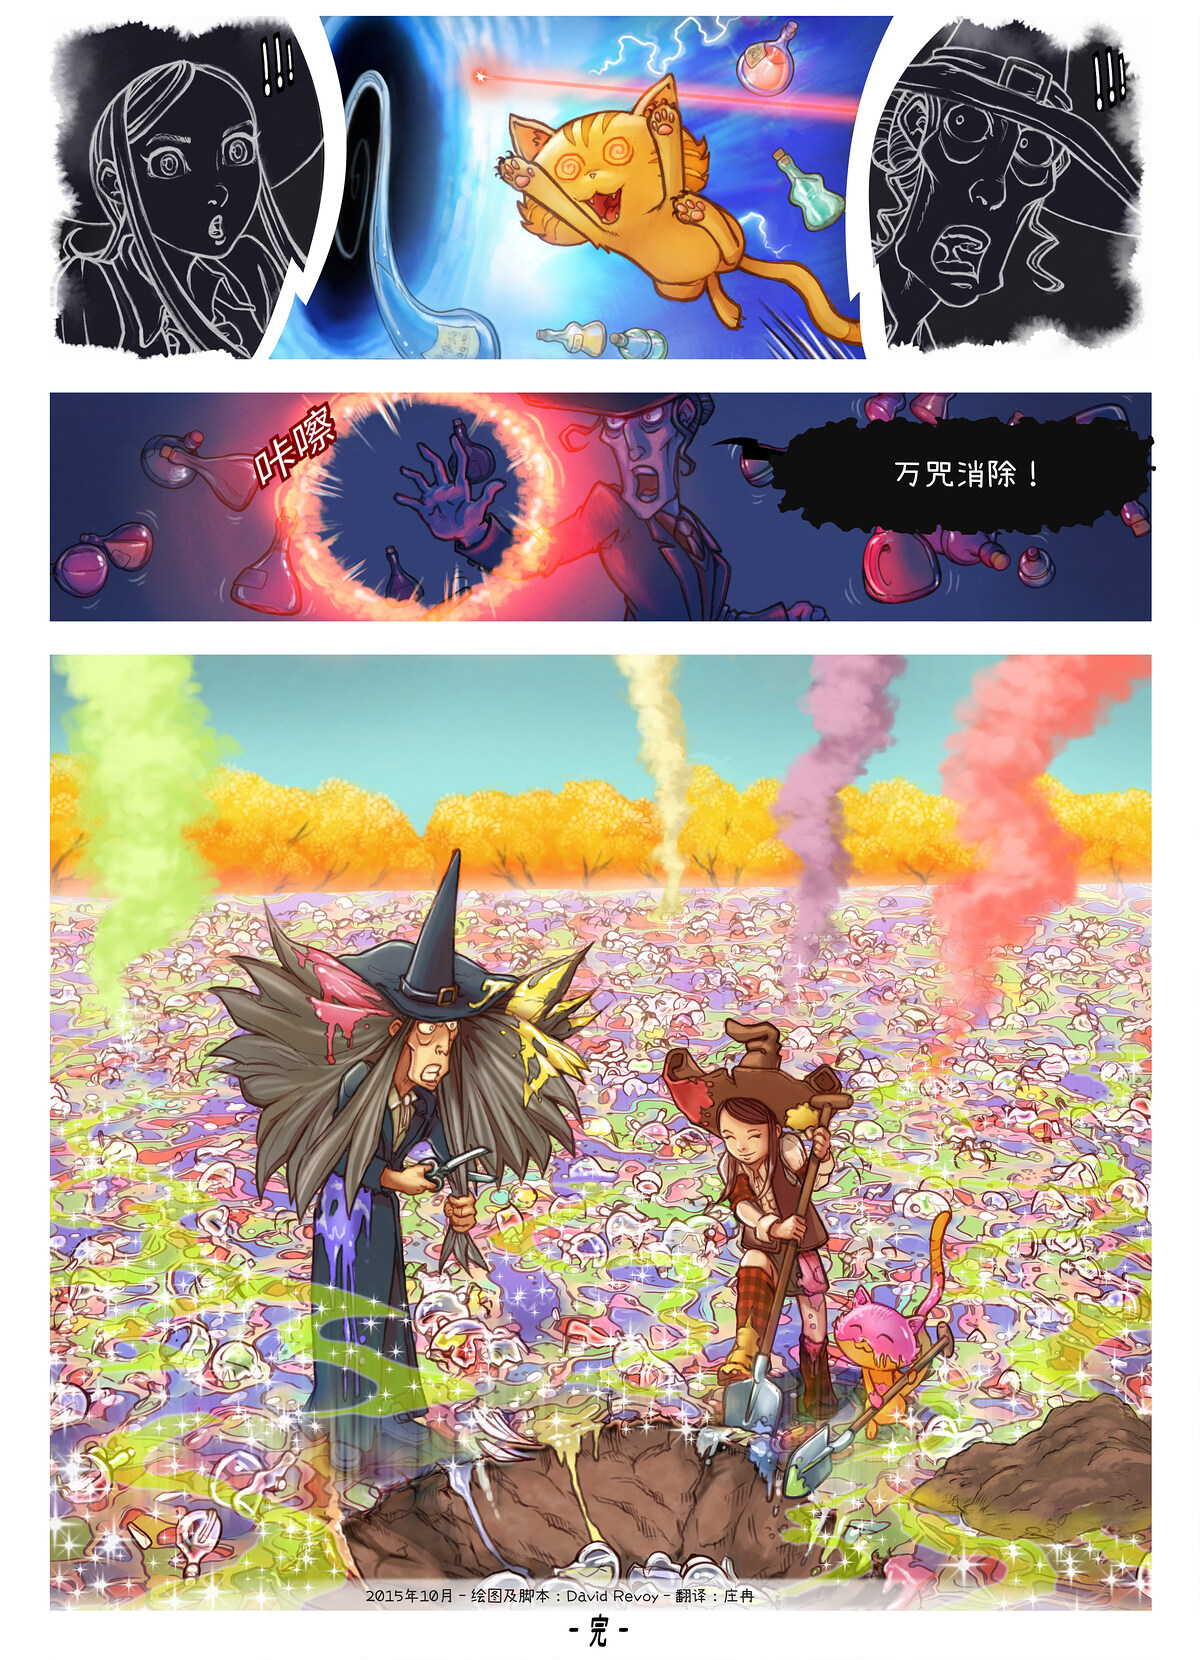 A webcomic page of Pepper&Carrot, 漫画全集 12 [cn], 页面 7